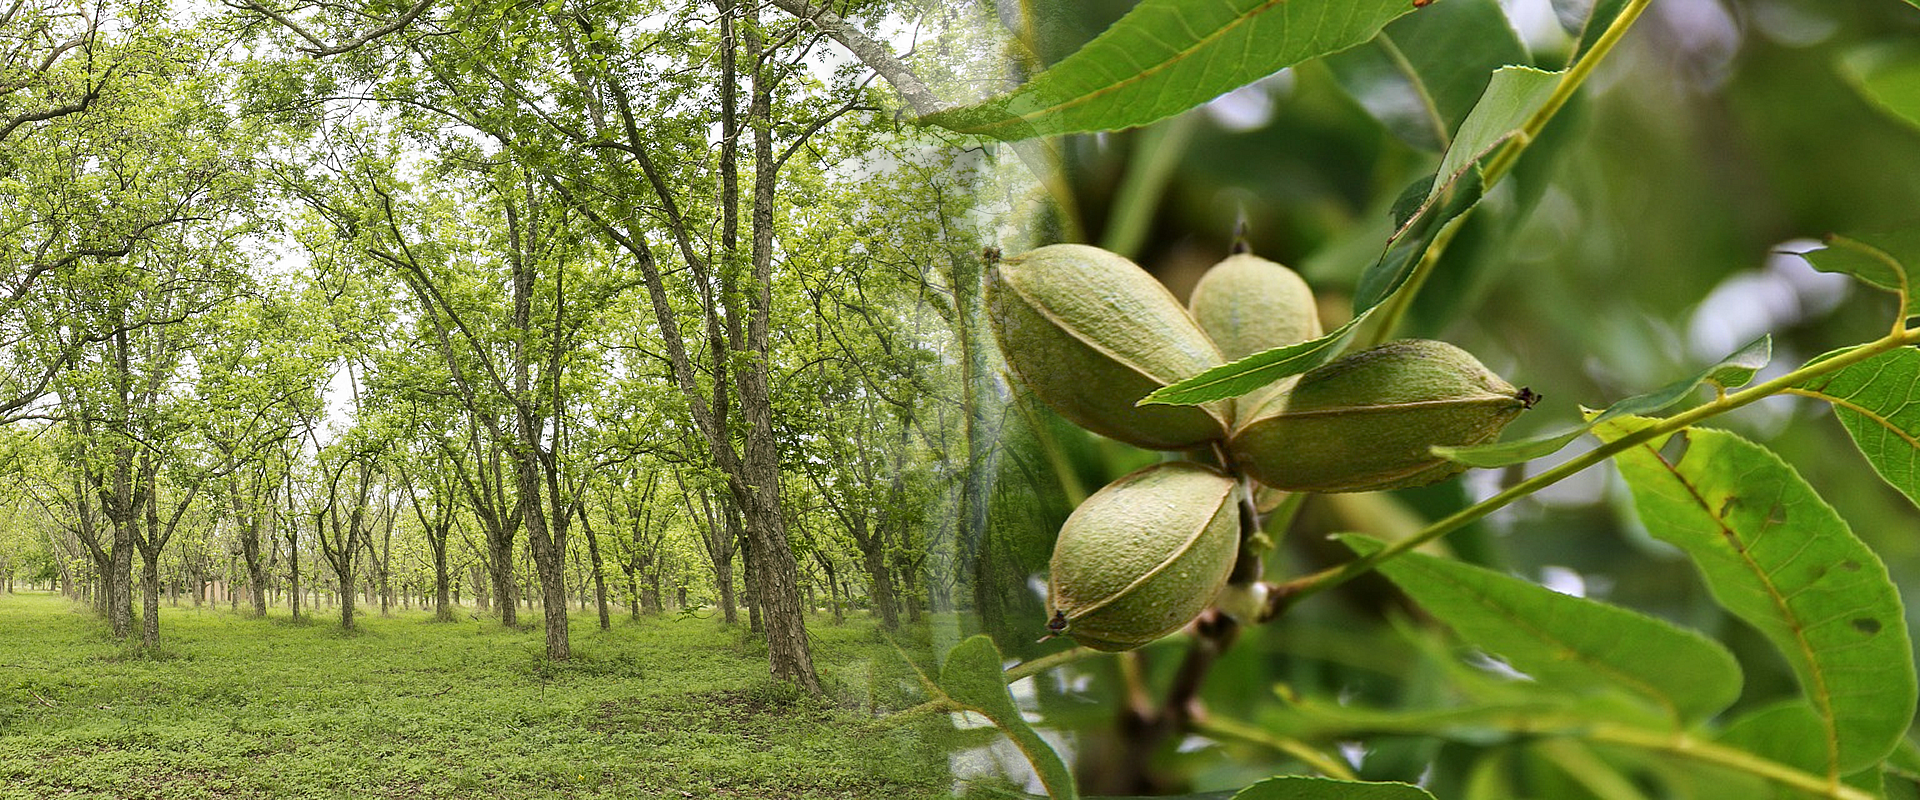 Lowveld Pecan Nut Tree suppliers - Riverside Wholesale commercial Nursery